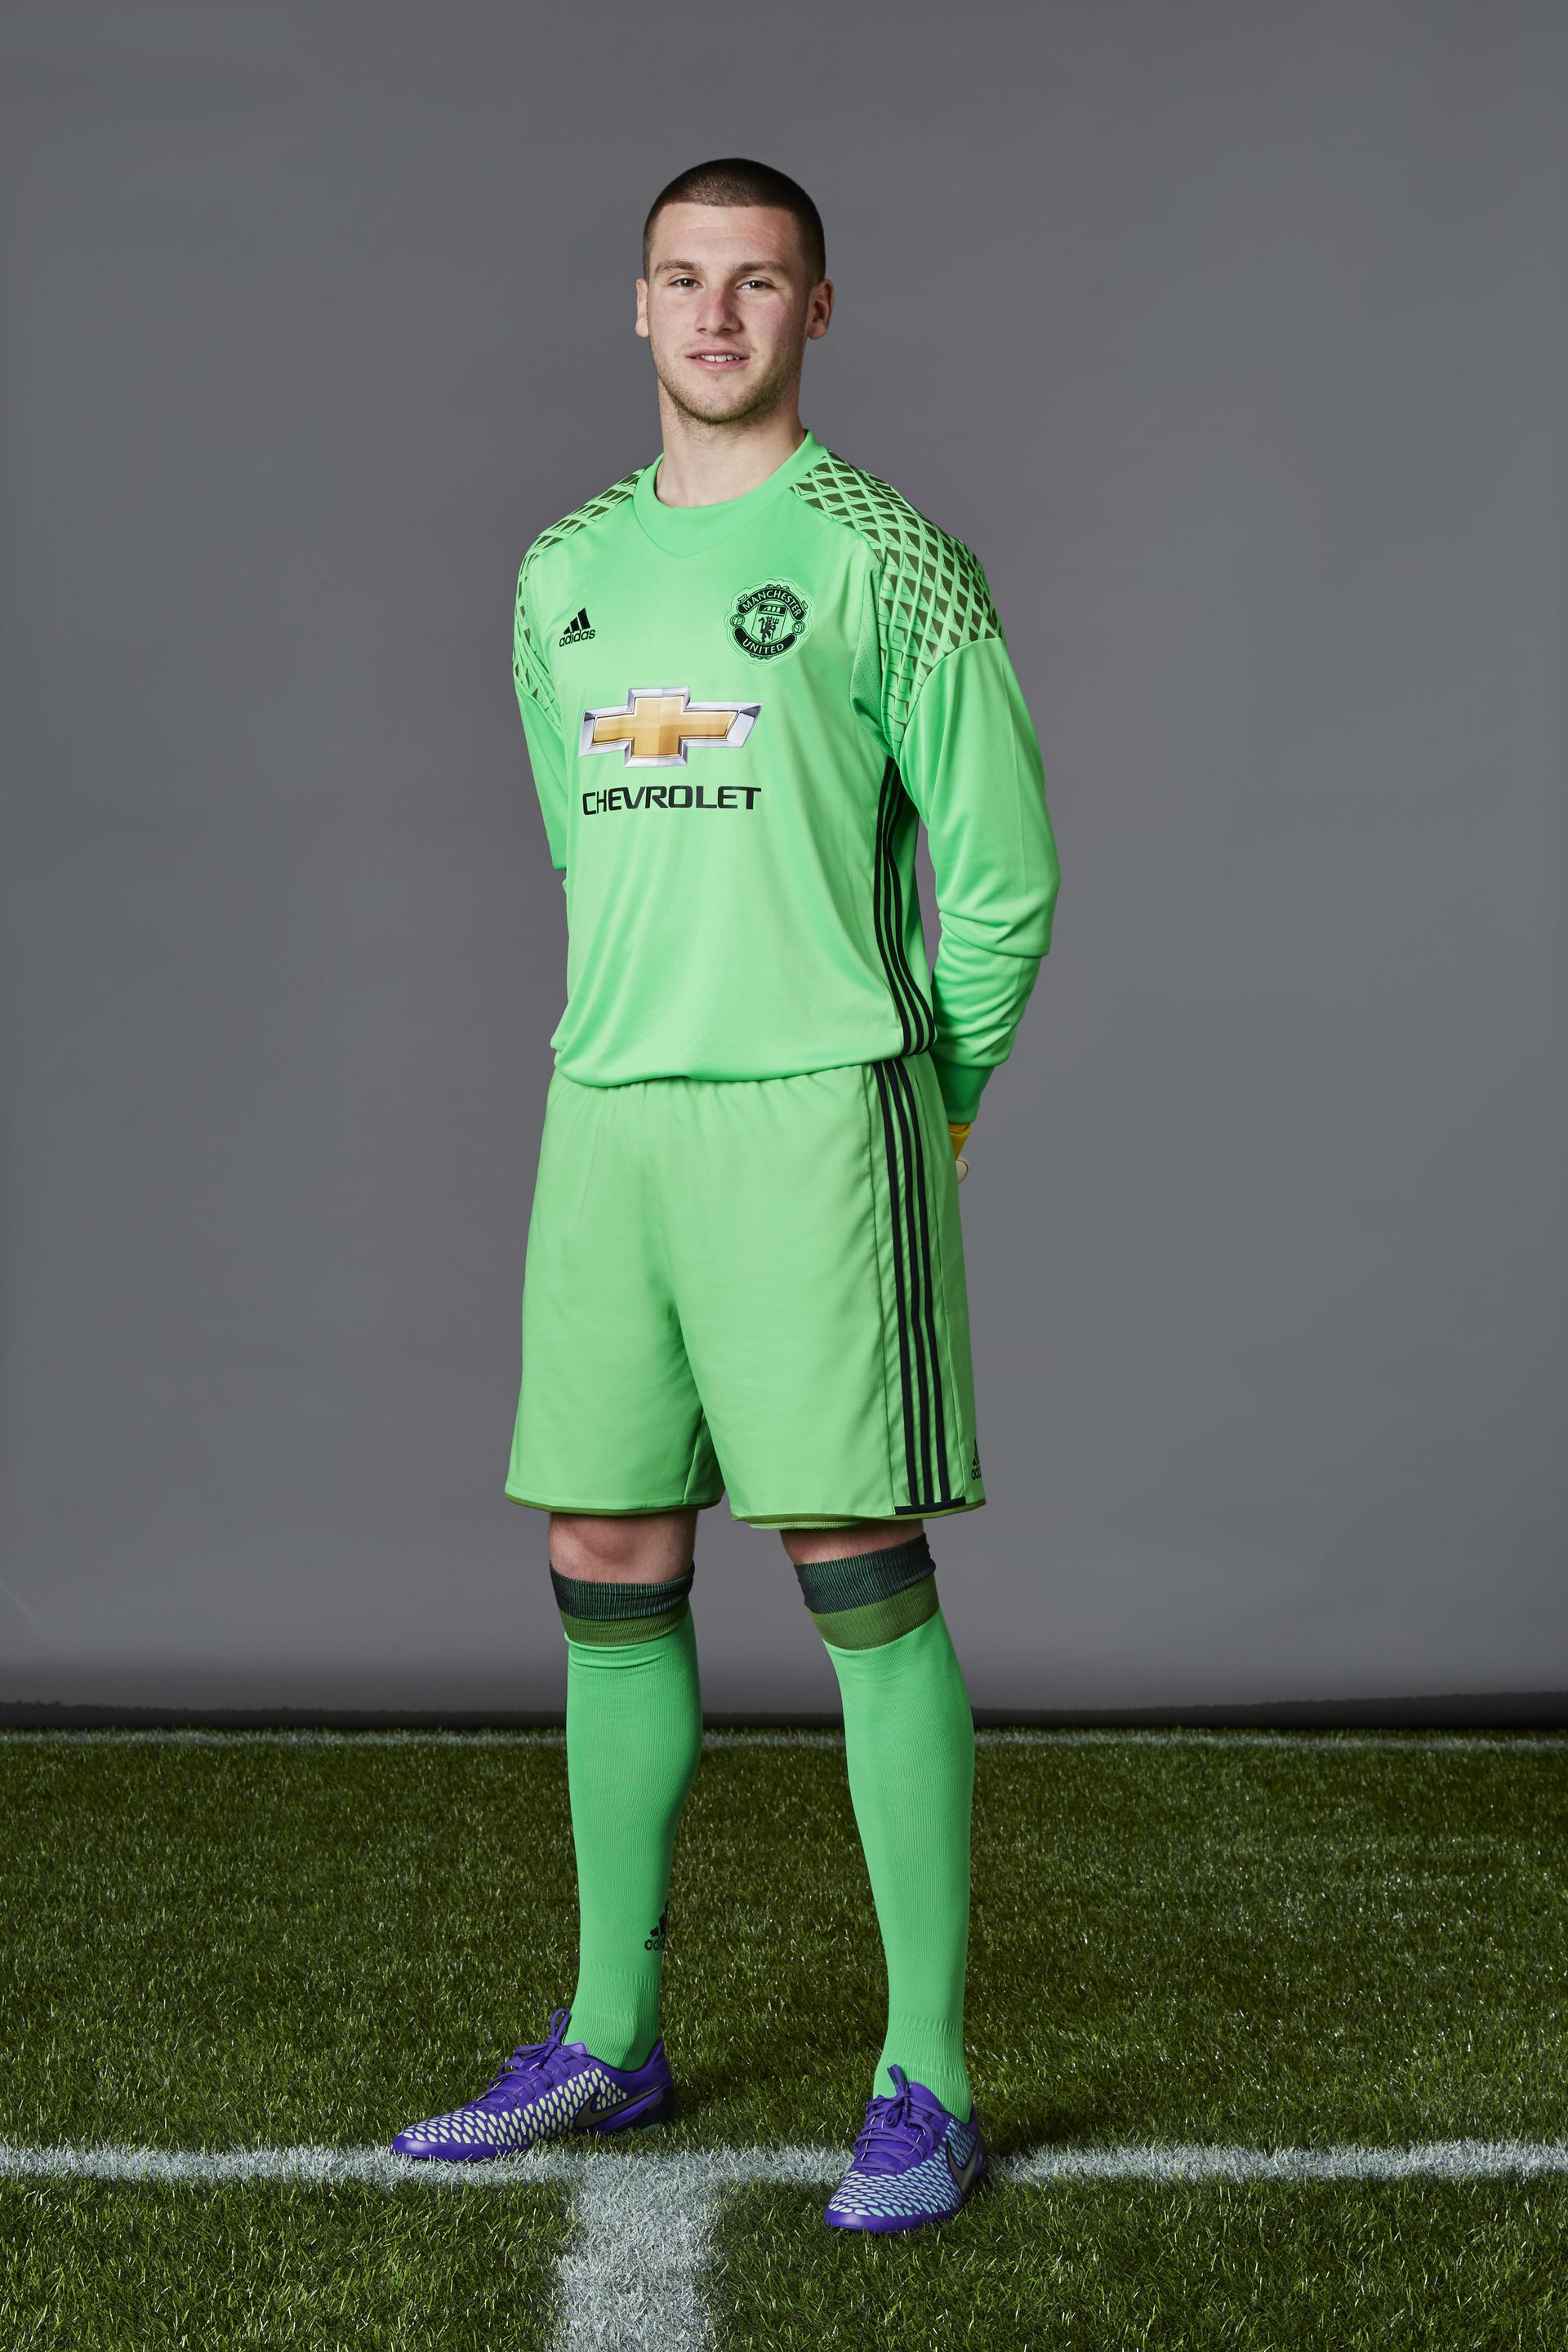 Sam Johnstone posing in his green United kit at a photoshoot.